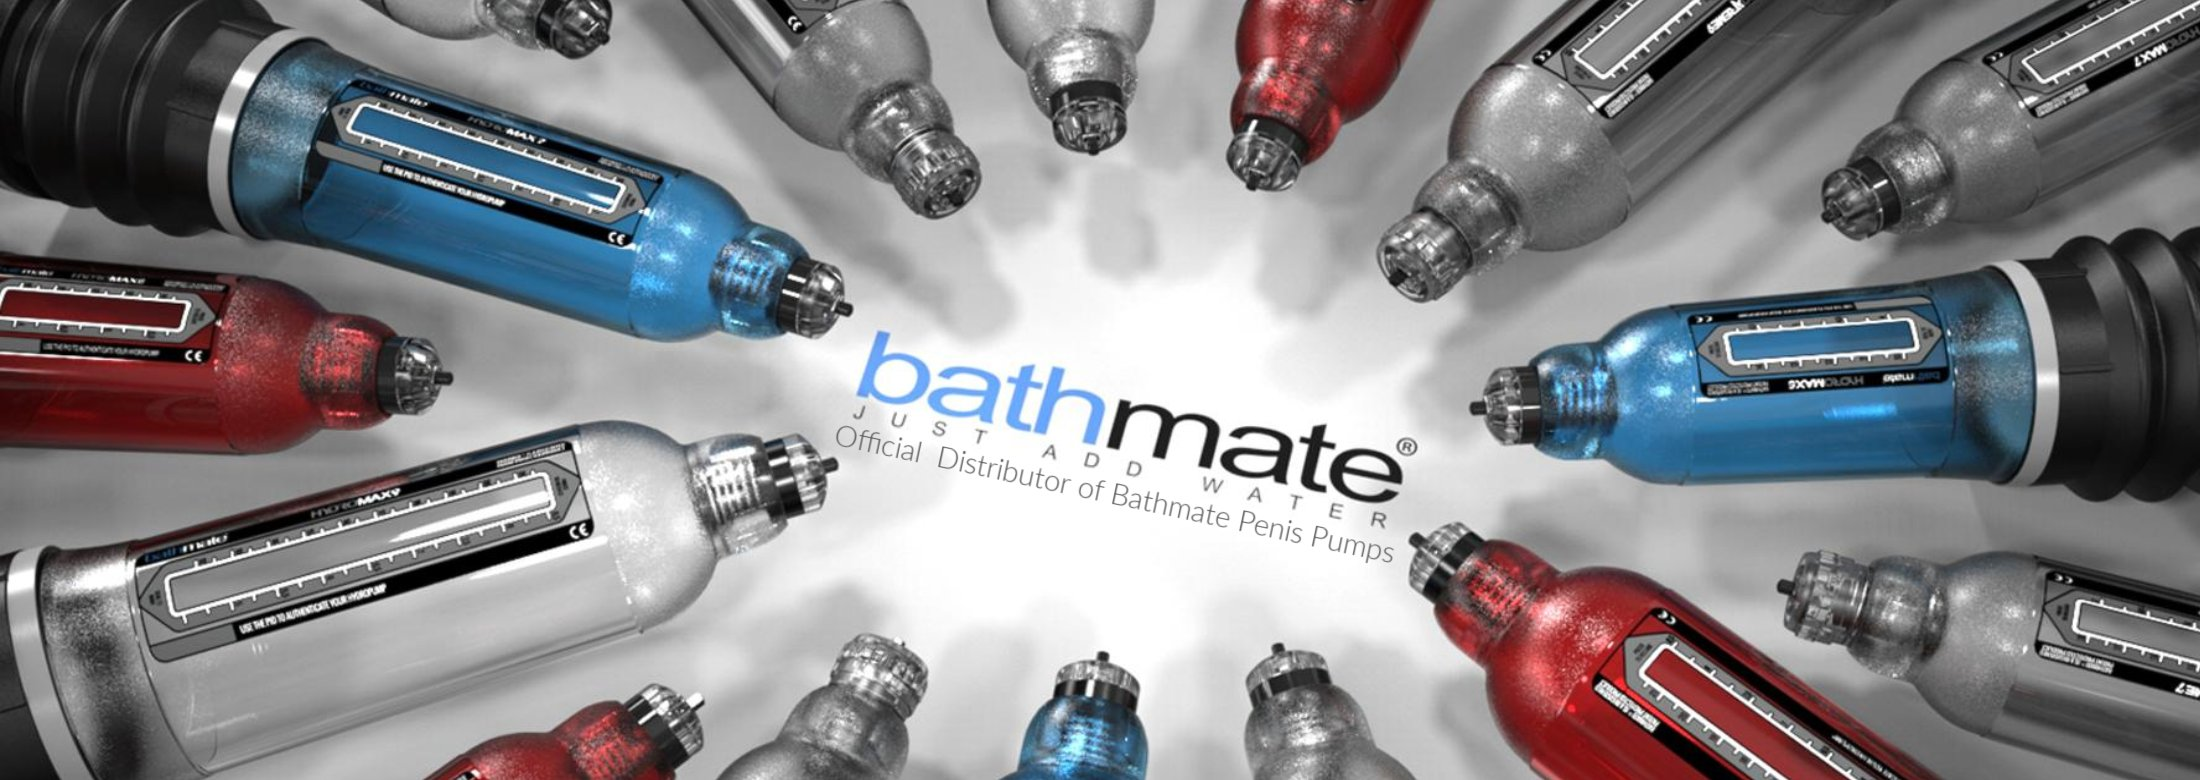 LIST OF PRODUCTS BY MANUFACTURER BATHMATE